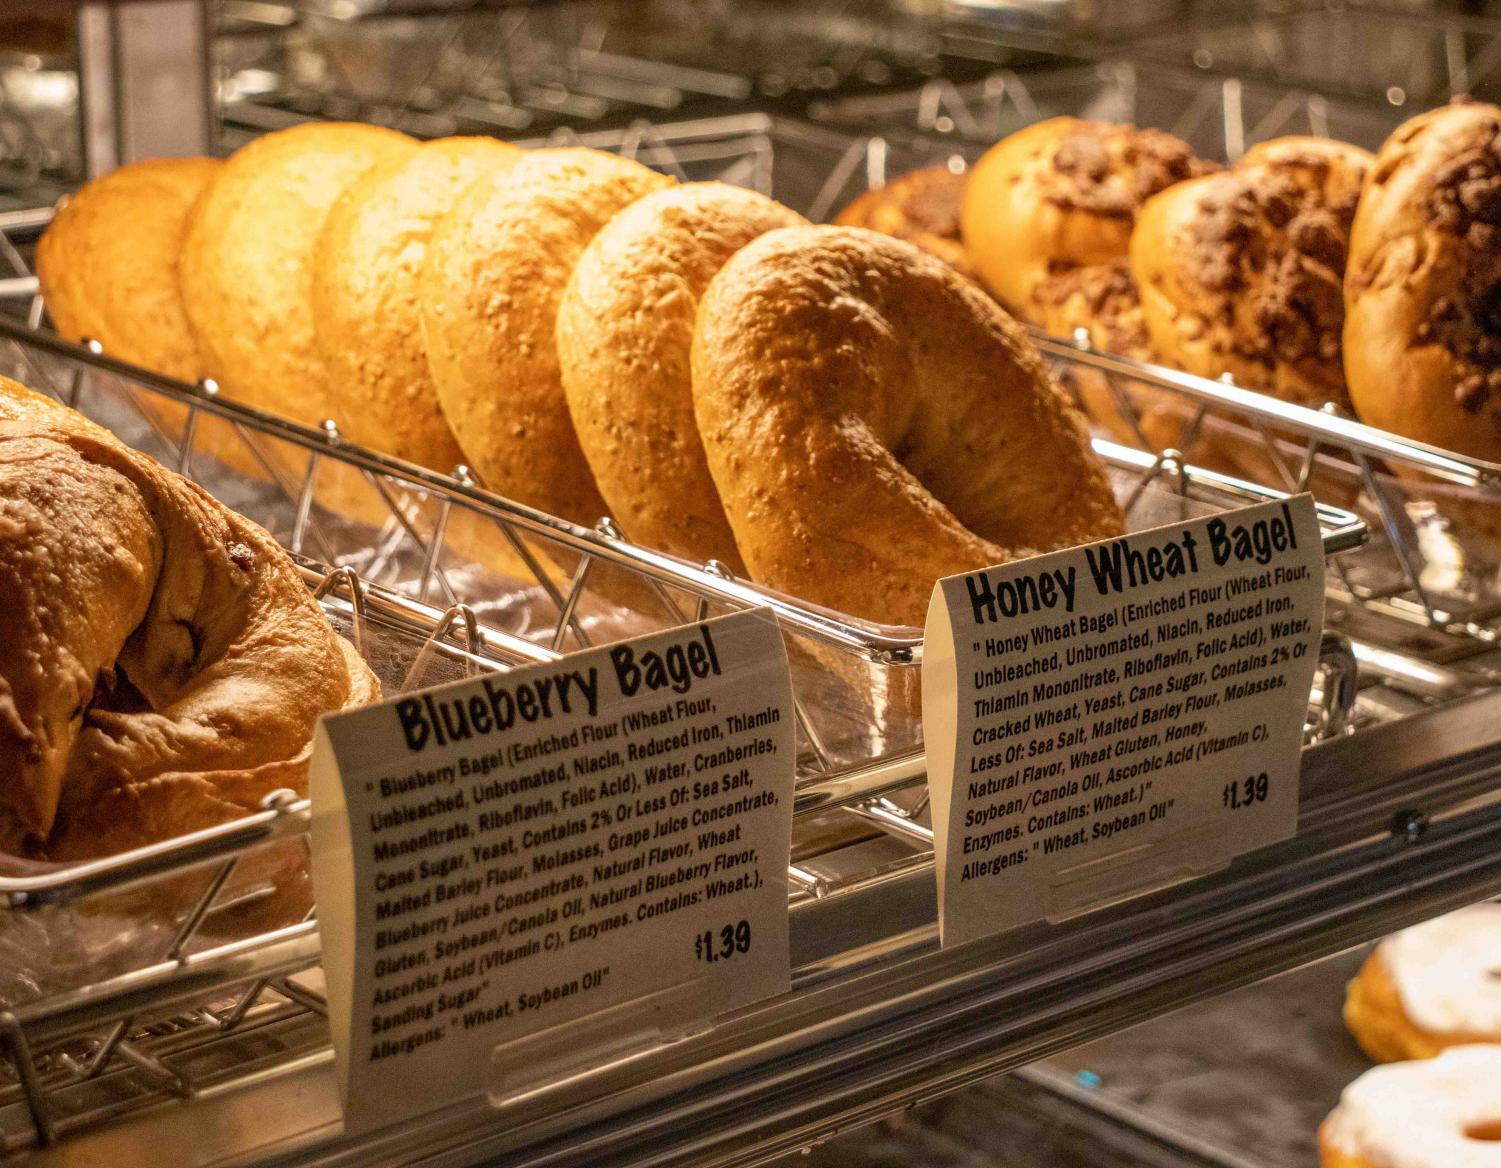 UNI Dining Services now offers bagels and cream cheese, available at campus retail locations and UNI catering.